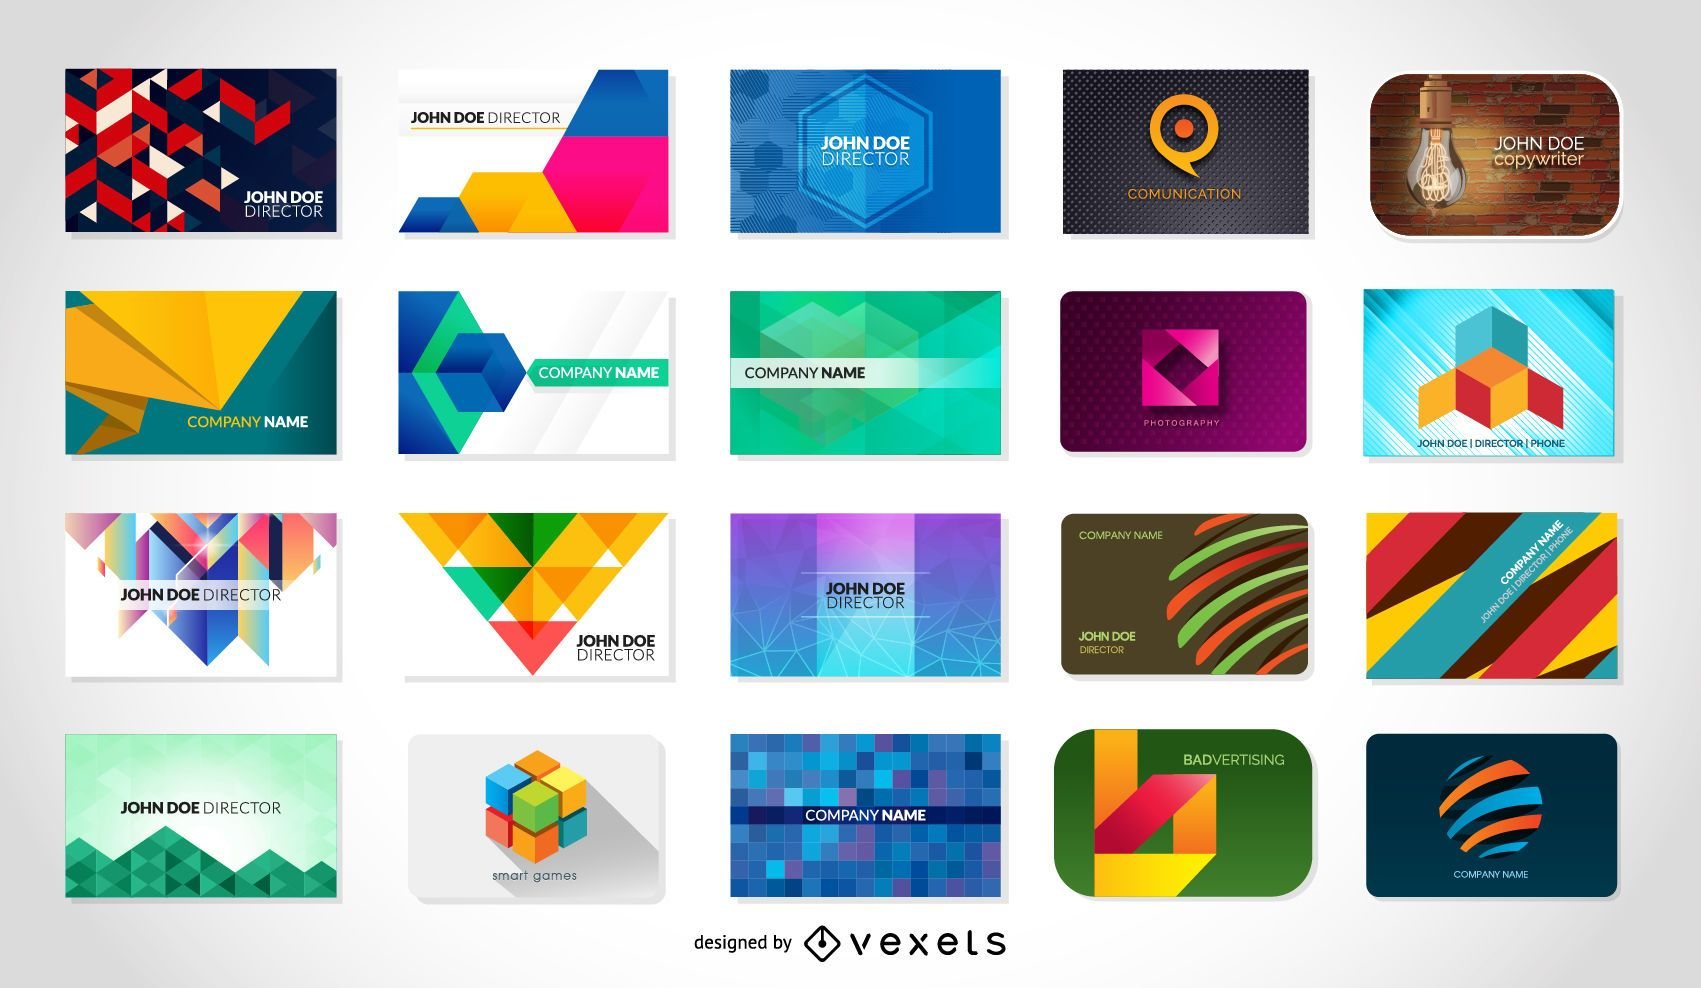 Free vector business card templates vector download free vector business card templates download large image 1701x988px license image user accmission Images